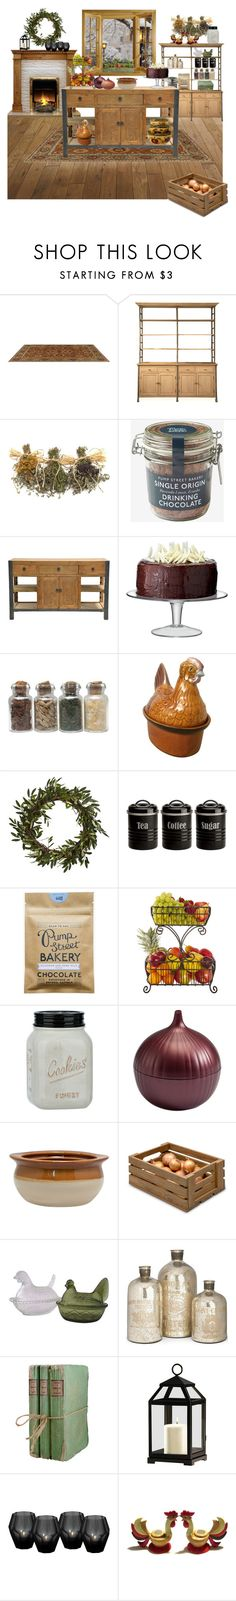 """Untitled #2784"" by terry-tlc ❤ liked on Polyvore featuring interior, interiors, interior design, home, home decor, interior decorating, Toast, LSA International, Nearly Natural and Typhoon"